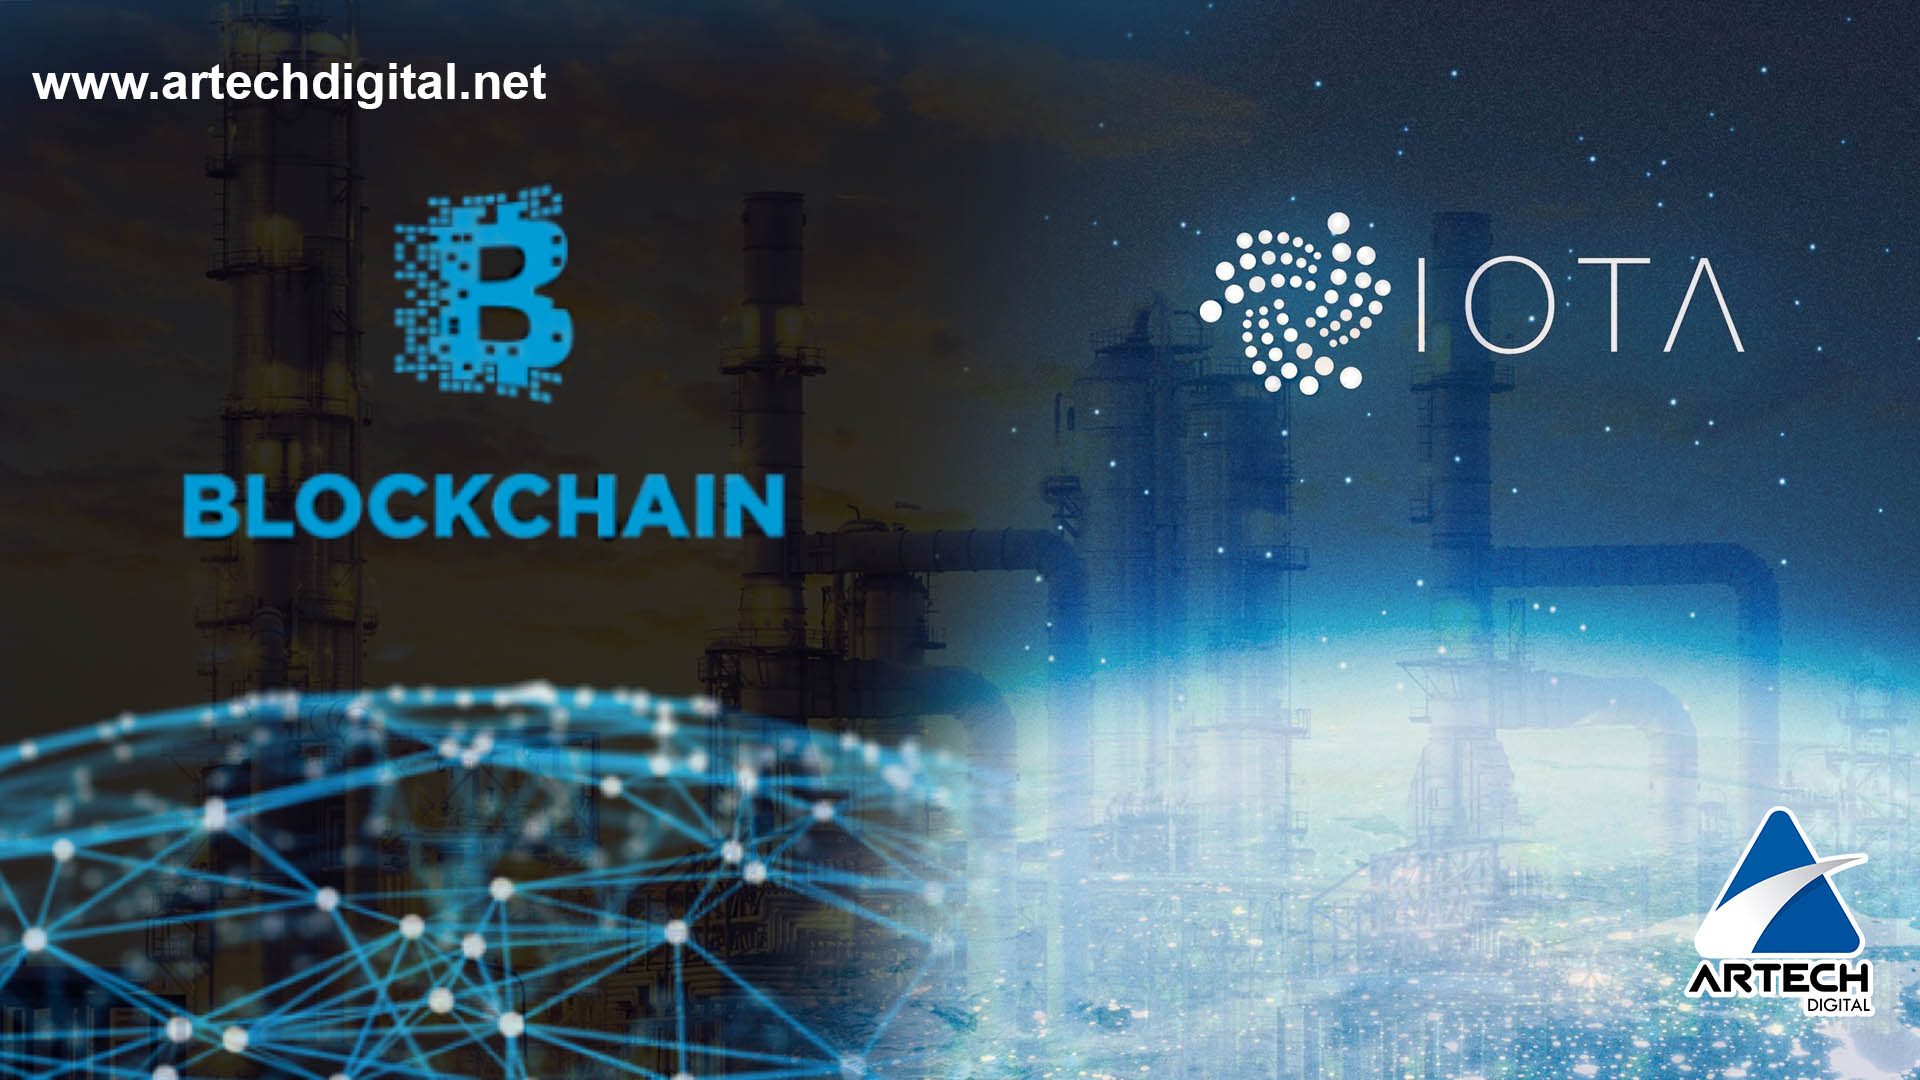 IOTA y Blockchain - Artech Digital